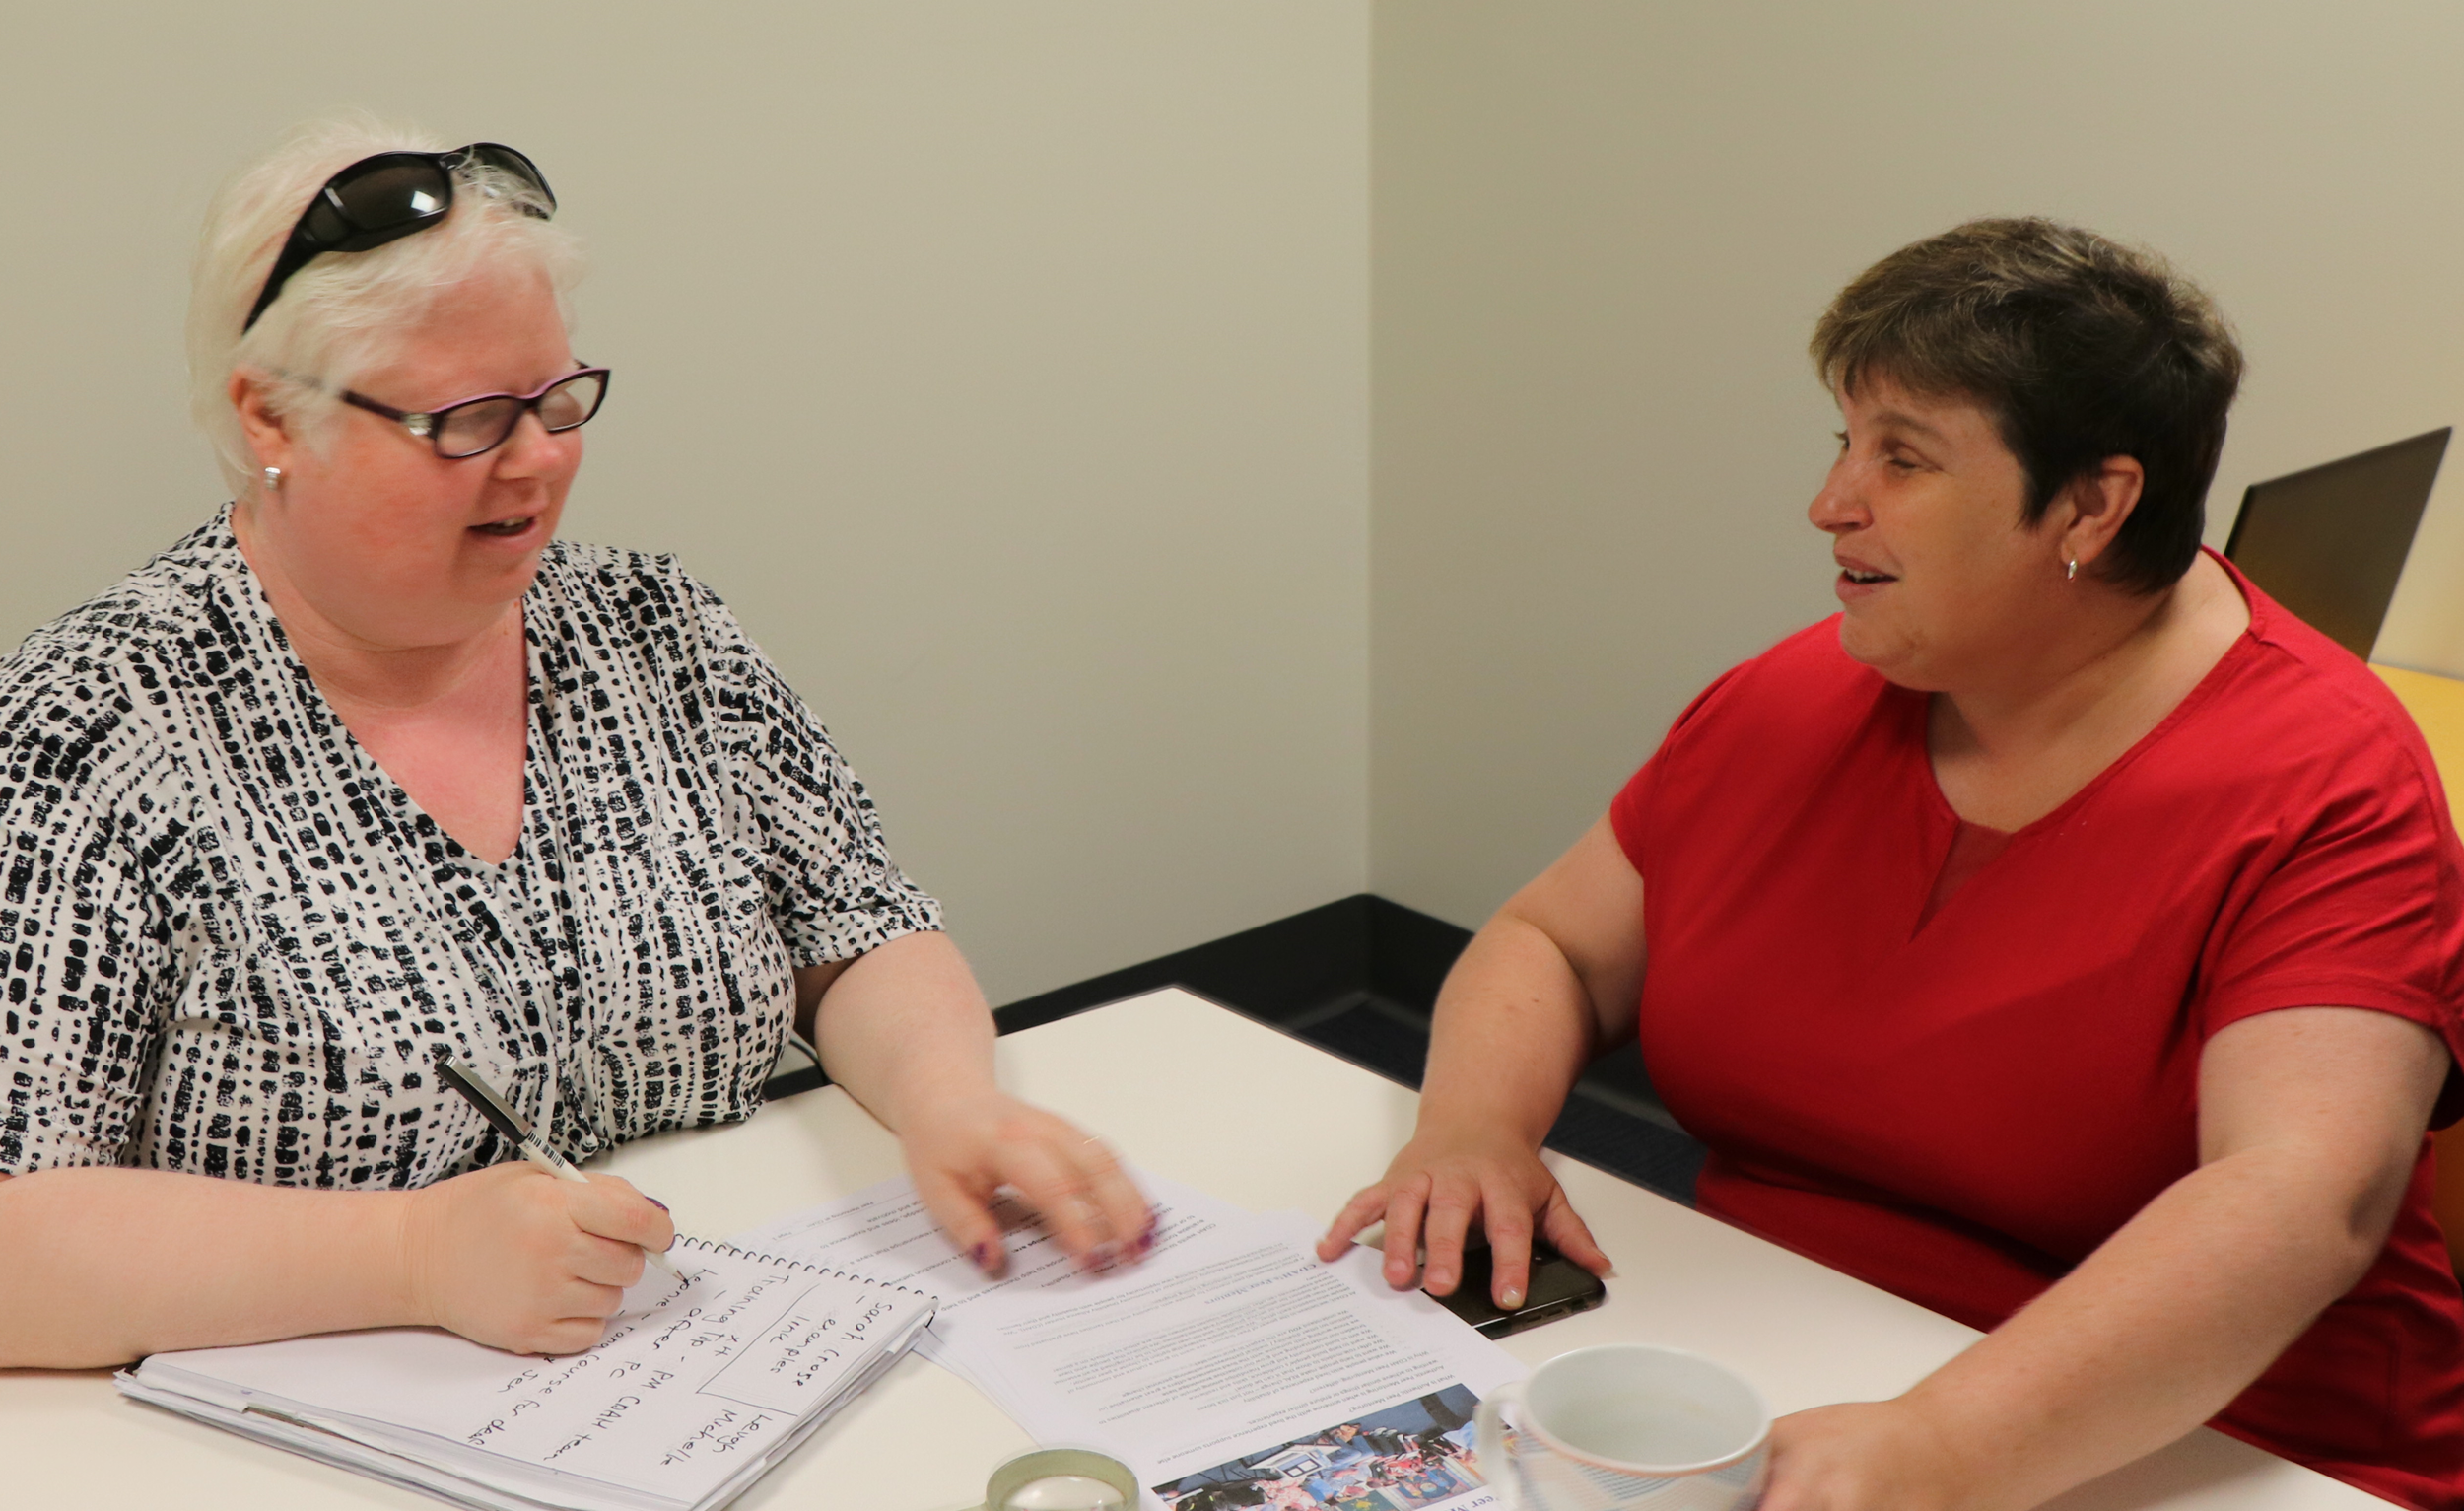 Raelene Block (left) and Cath Mahony are preparing their presentation for the 'Inclusion Training' workshop.